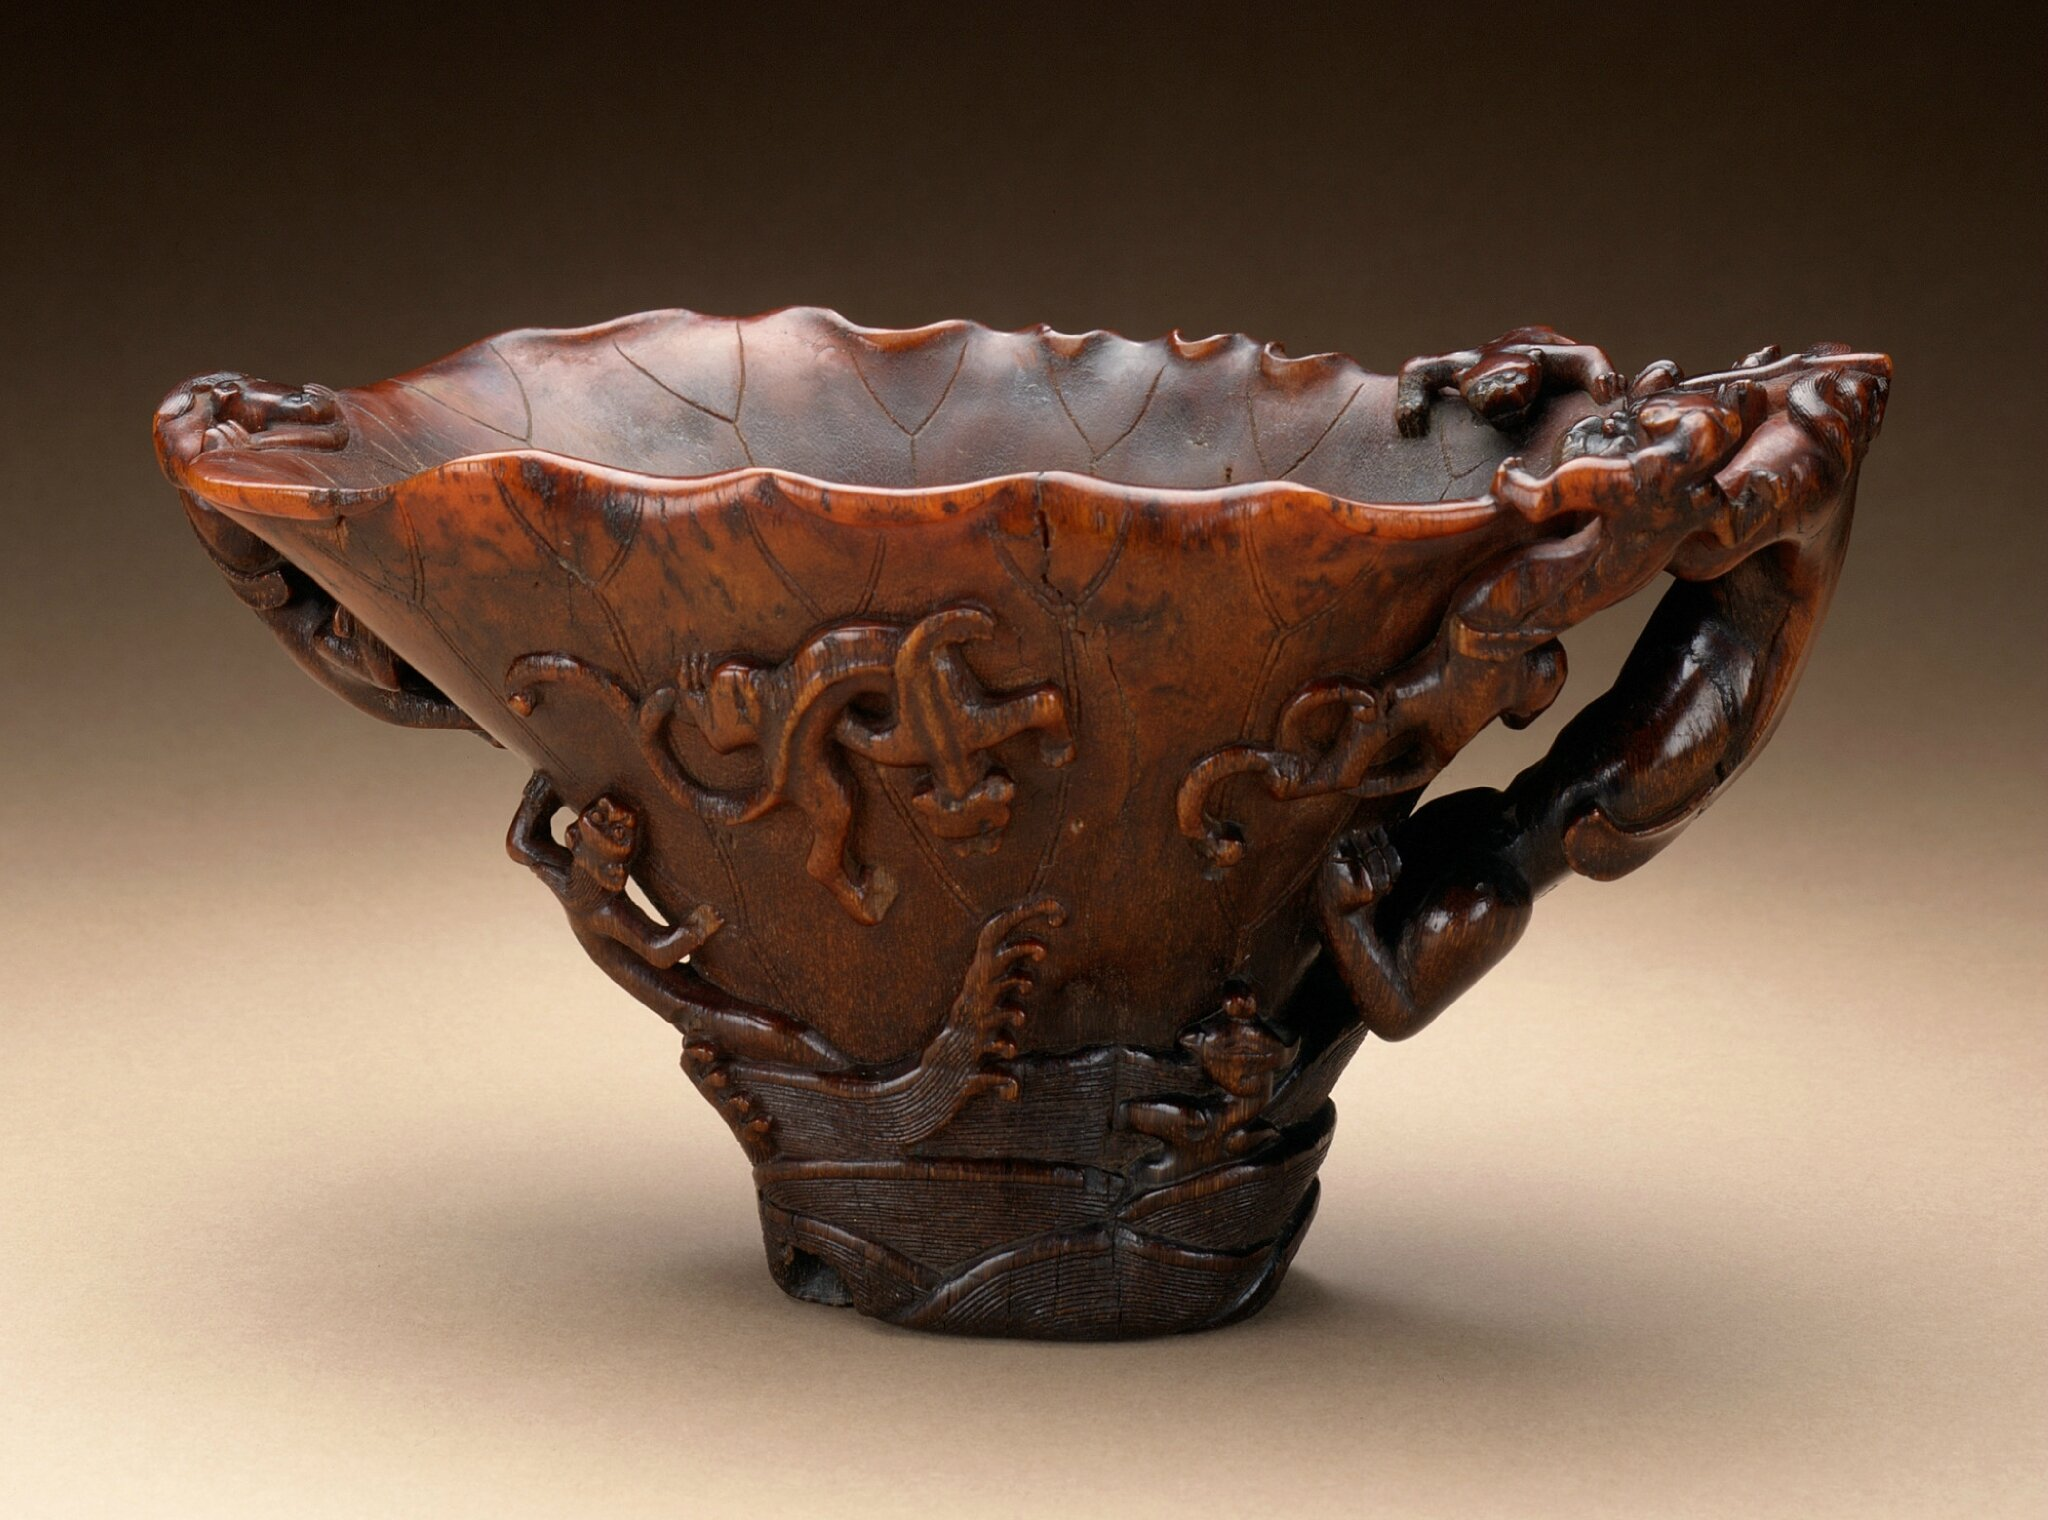 Cup (Guang) with Dragons in Waves, China, late Ming dynasty, about 1550-1644